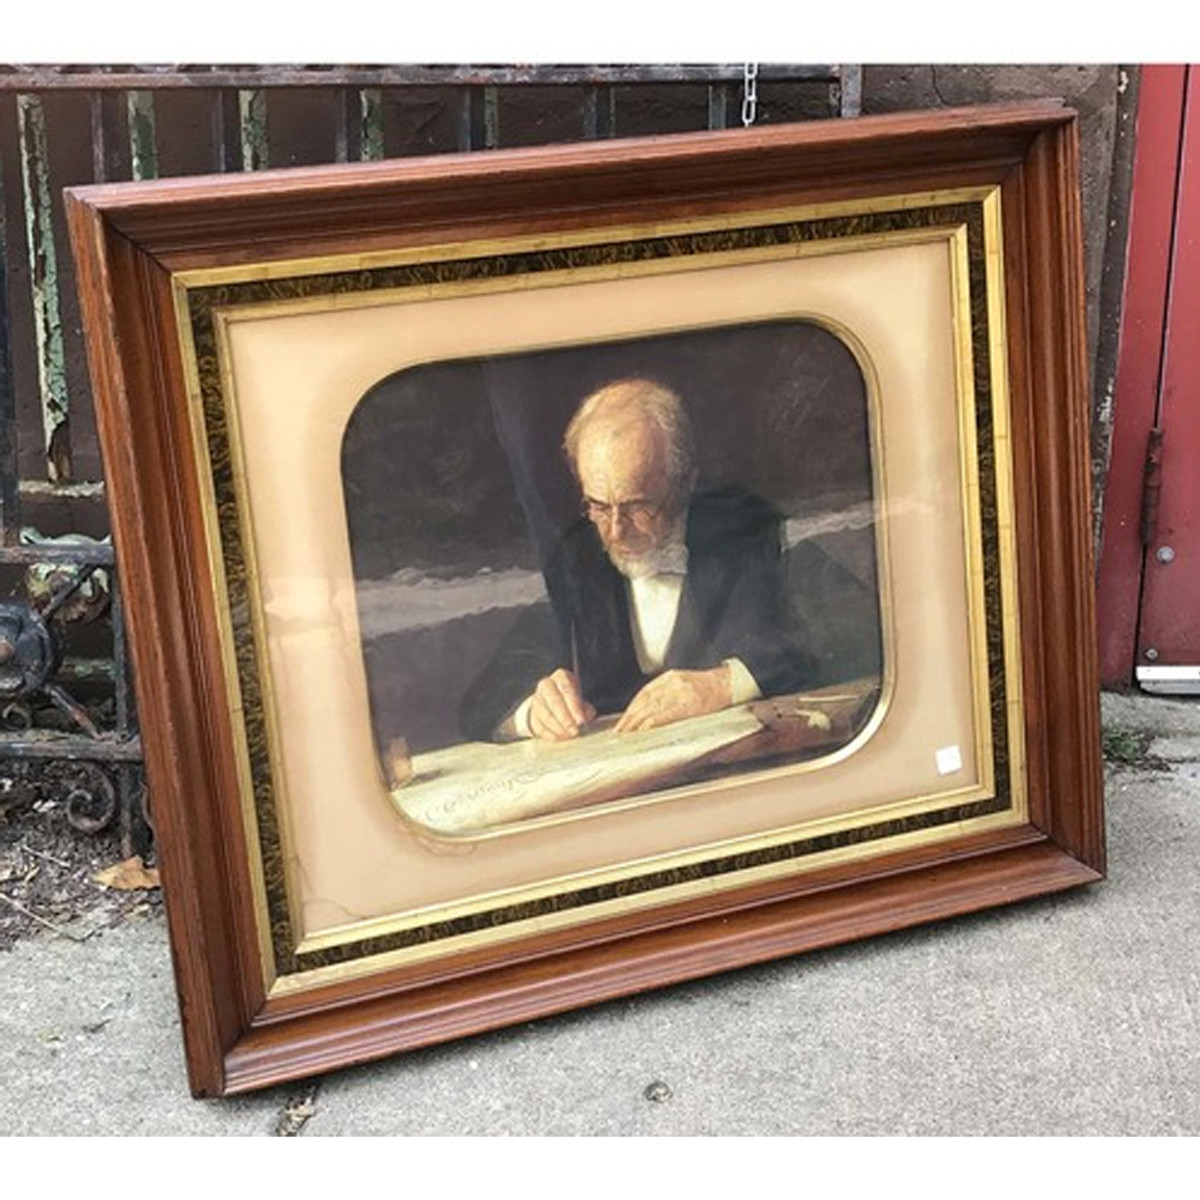 A17056 - Vintage Portrait Print in Antique Frame